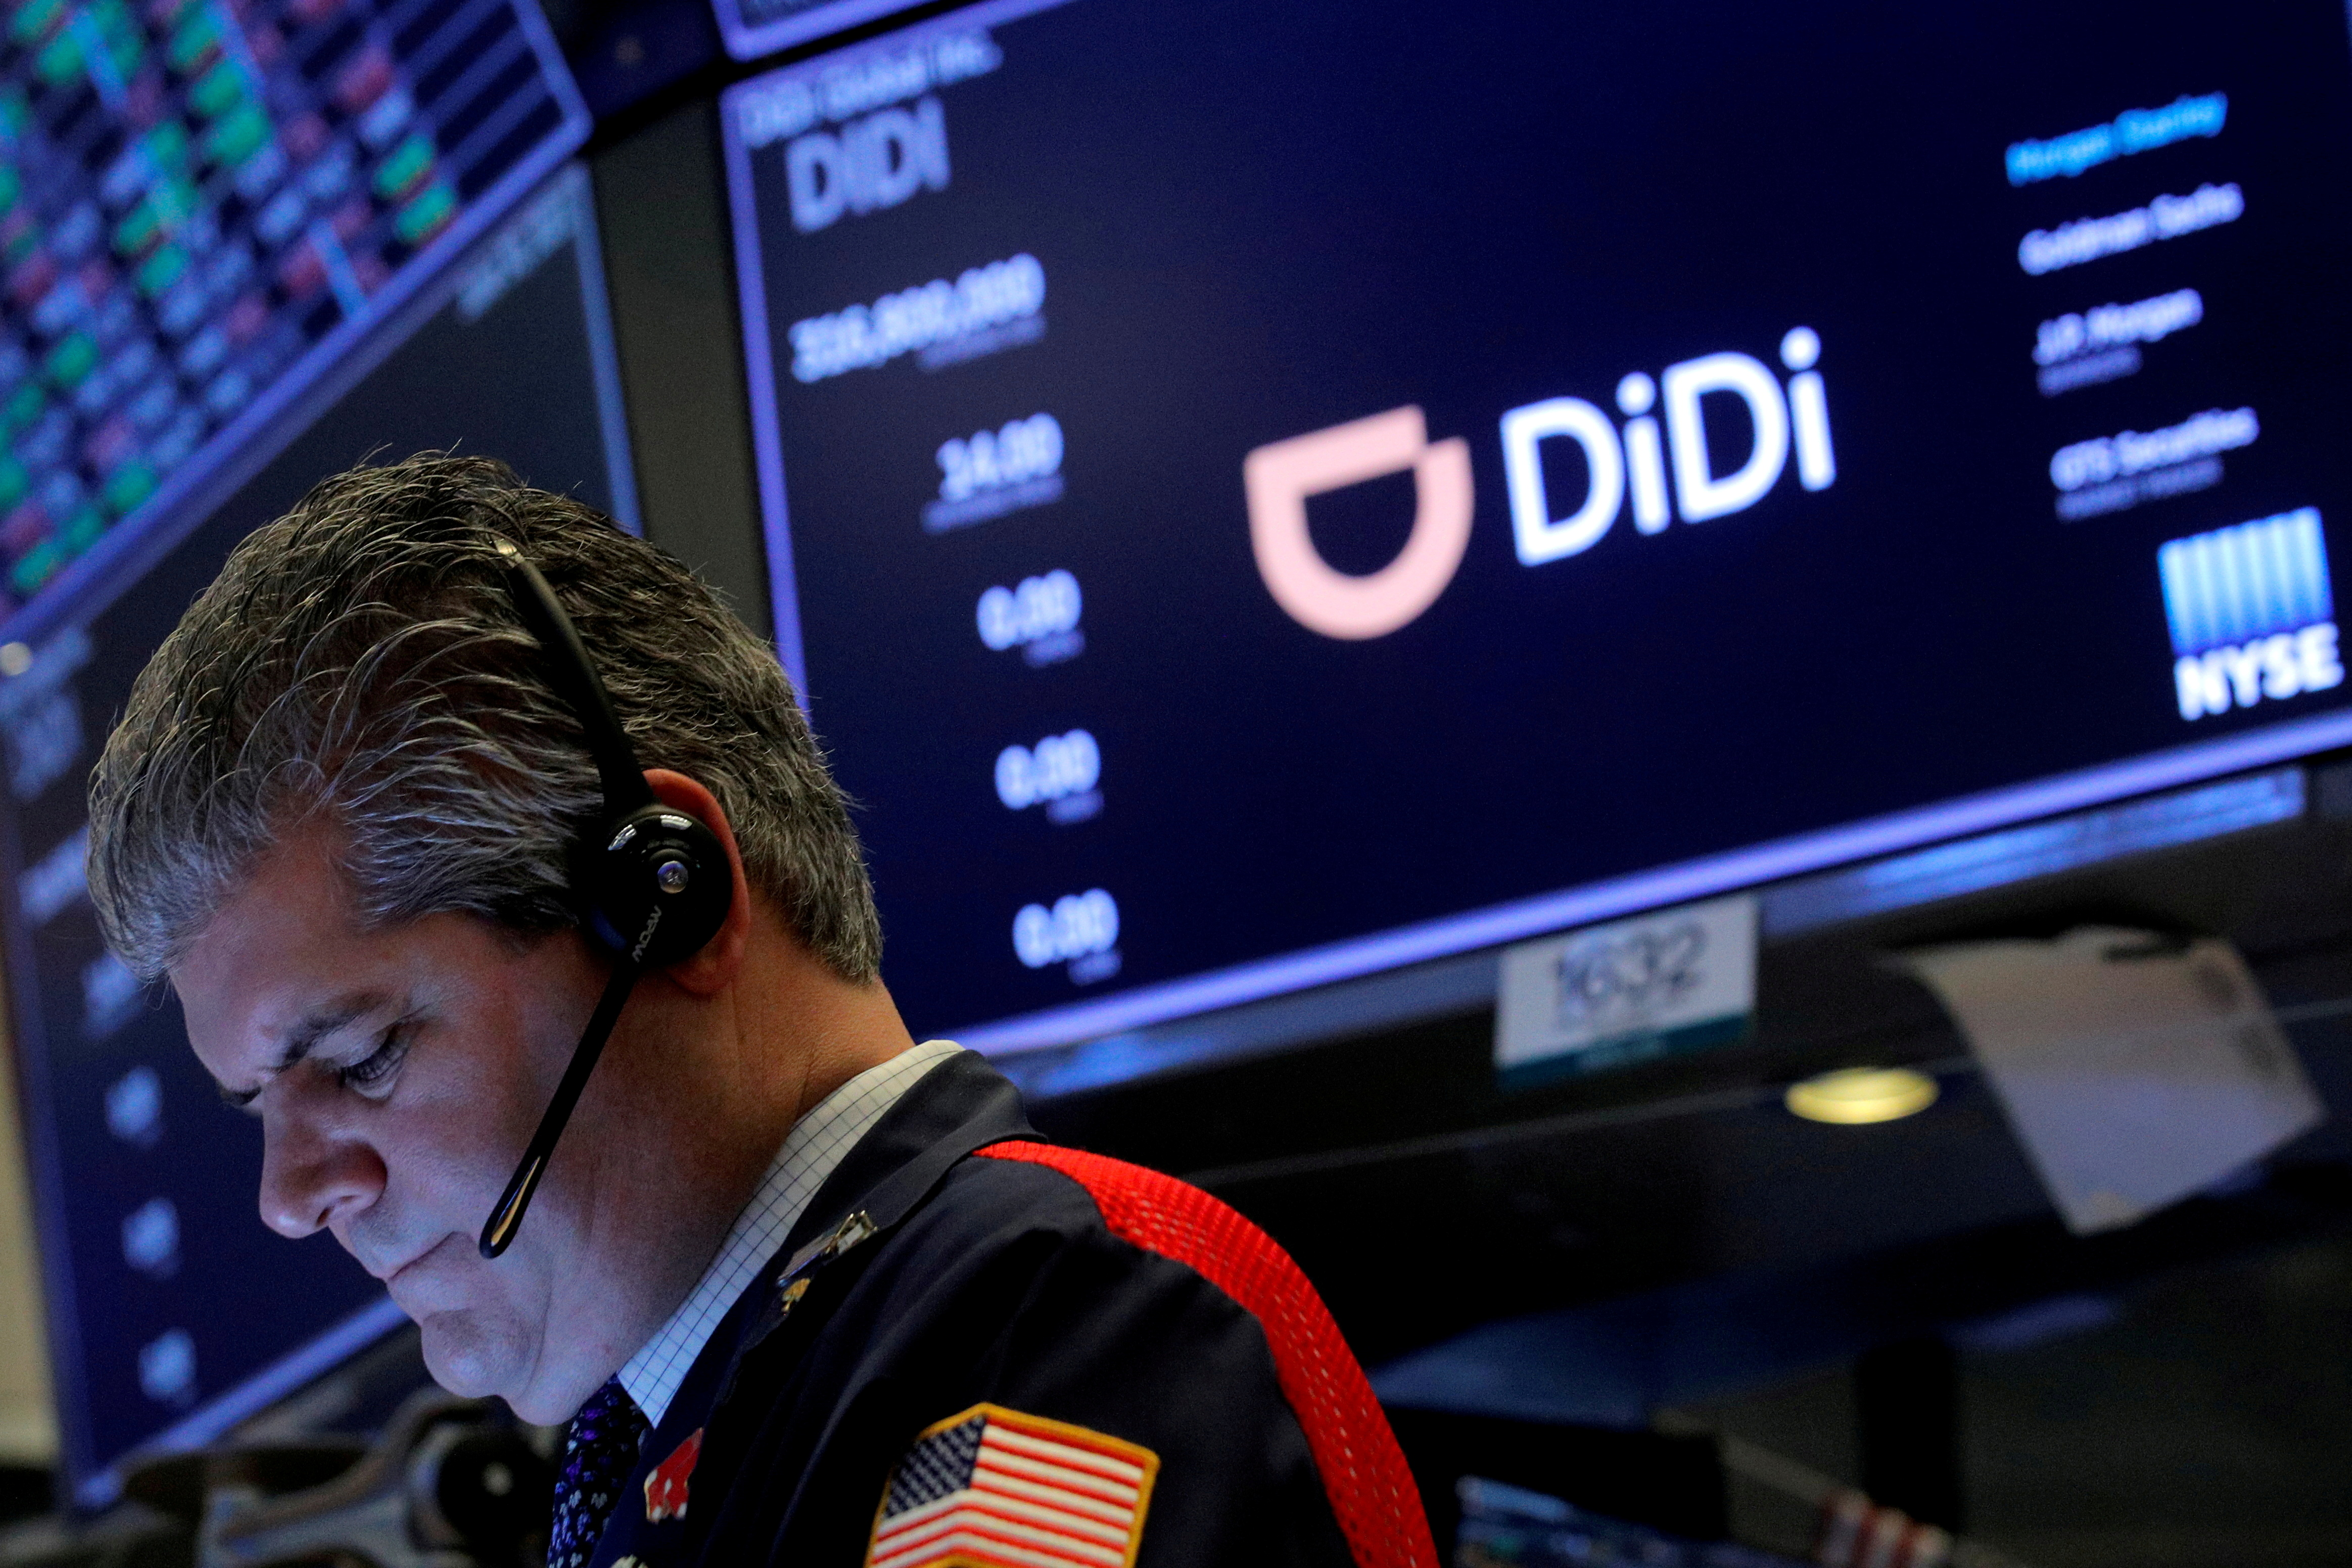 A trader works during the IPO for Chinese ride-hailing company Didi Global Inc on the New York Stock Exchange (NYSE) floor in New York City, U.S., June 30, 2021.  REUTERS/Brendan McDermid/File Photo